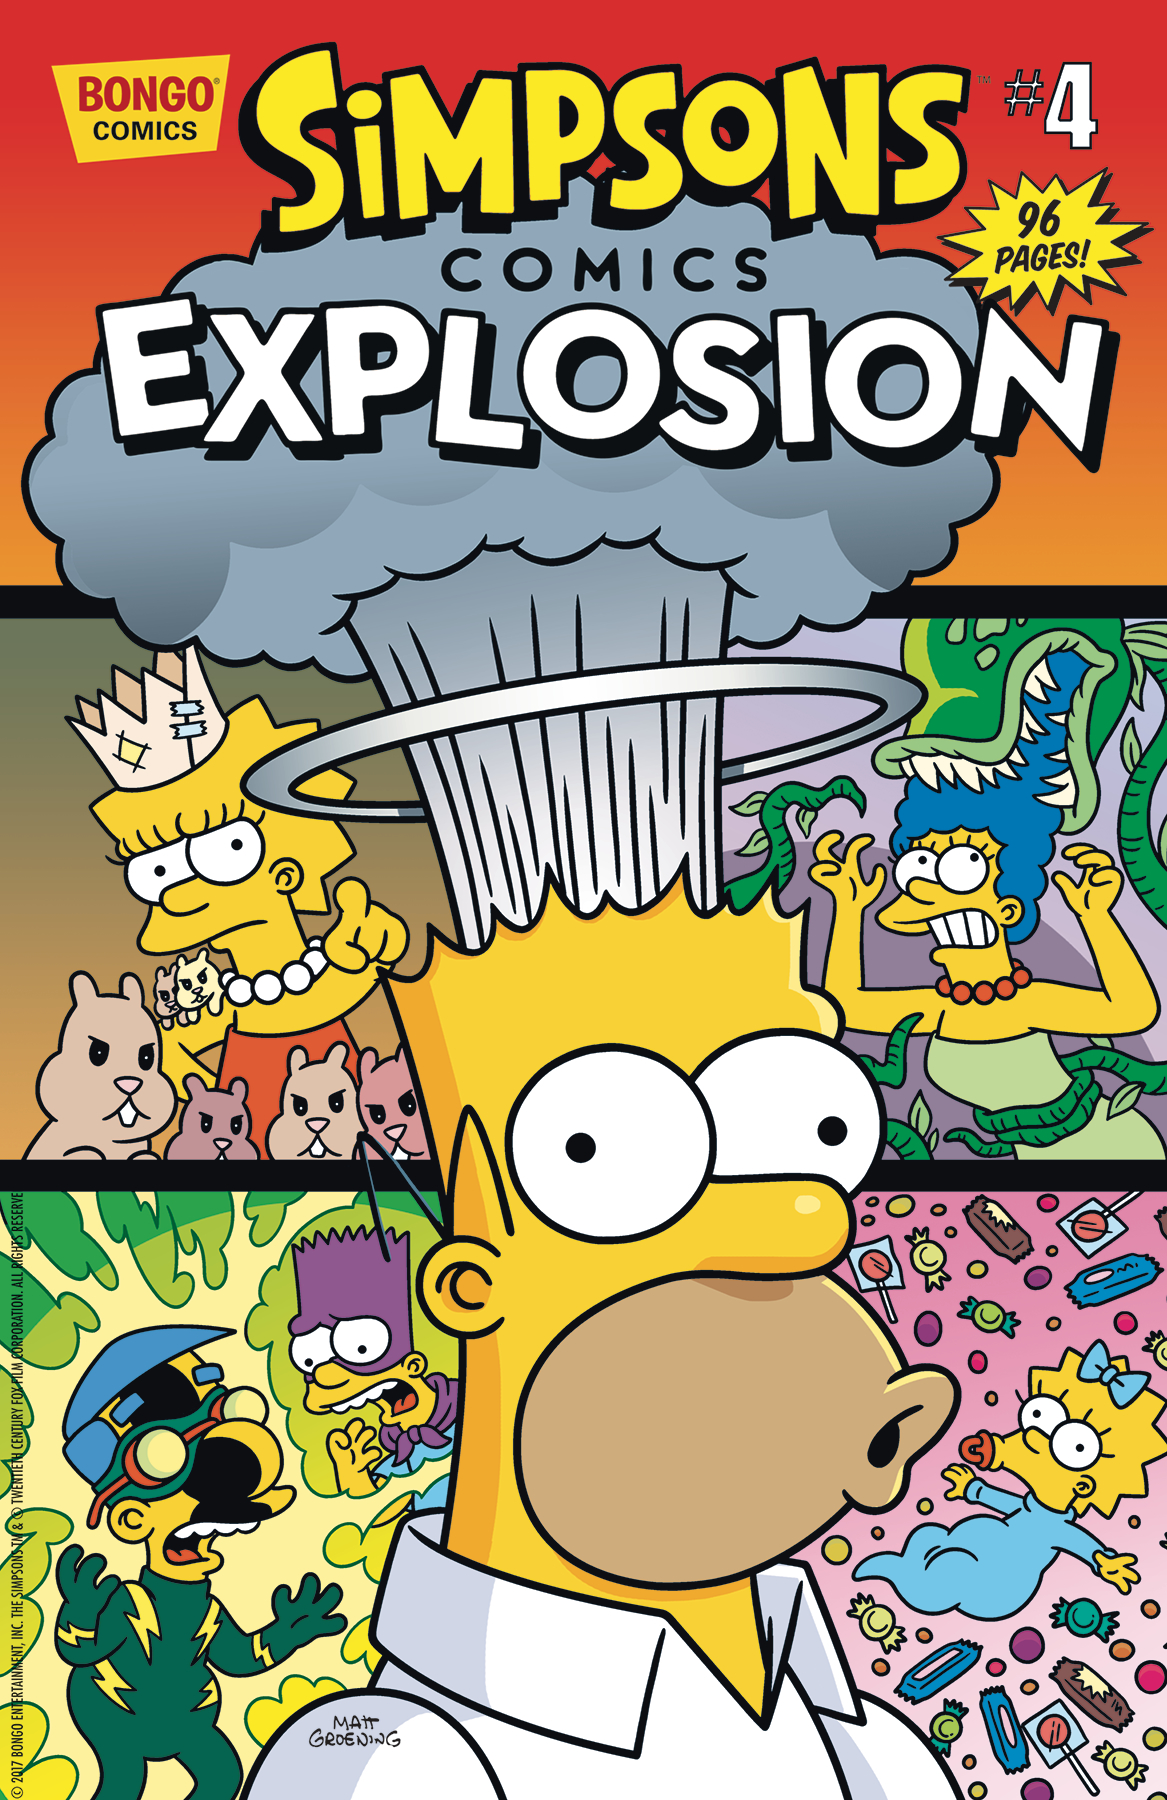 Simpsons comic galleries 45